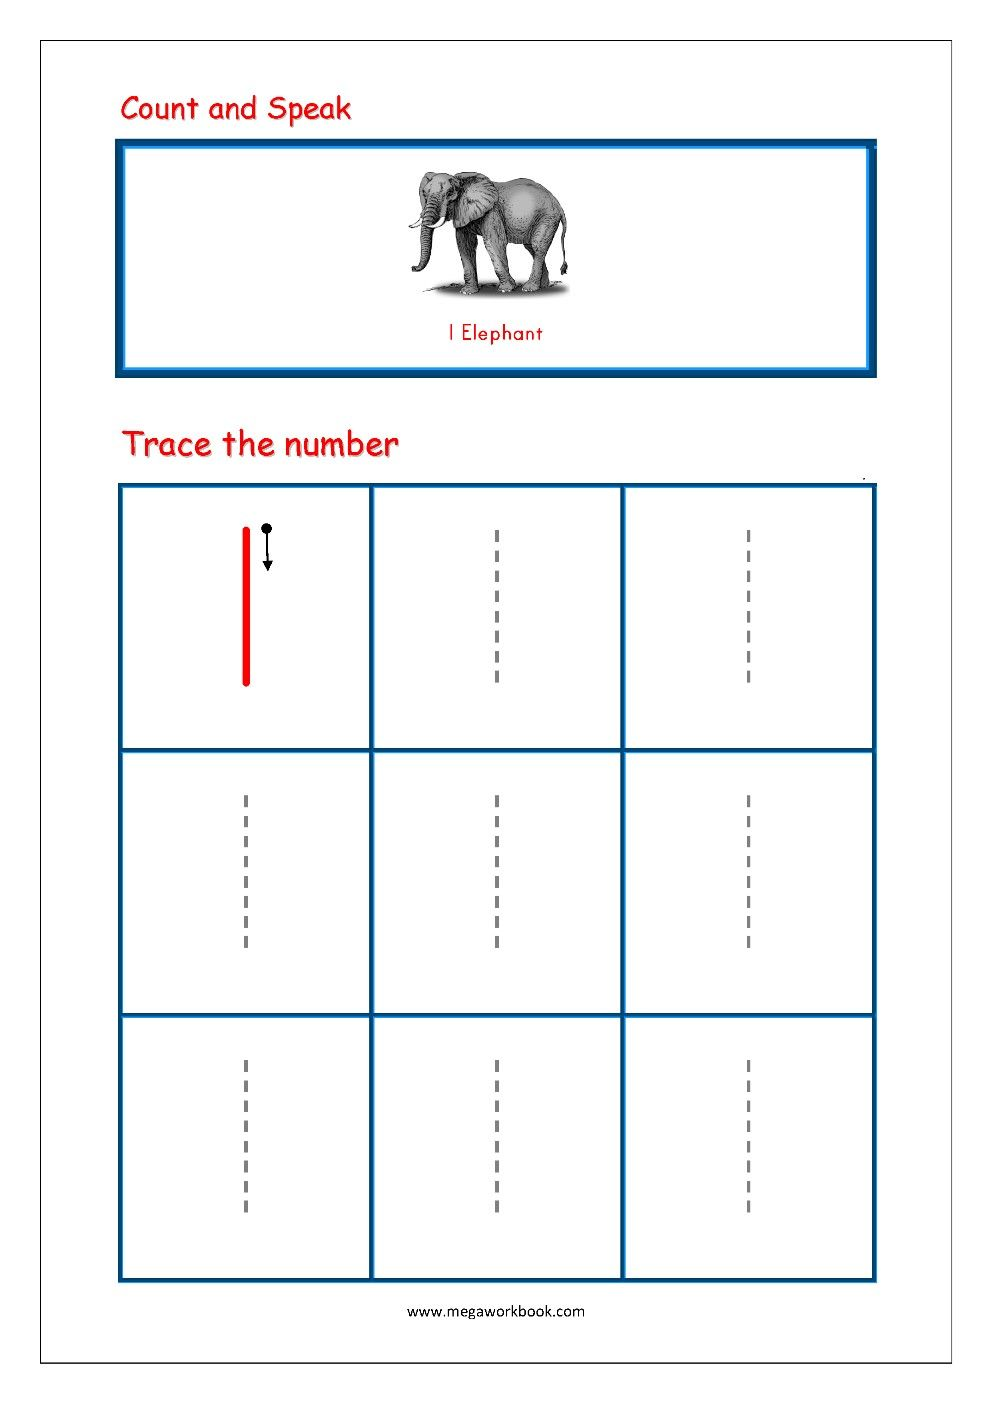 Pin By Cori Larsen On Learning Activity Binder Writing Numbers Tracing Worksheets Writing Numbers Kindergarten [ 1403 x 992 Pixel ]